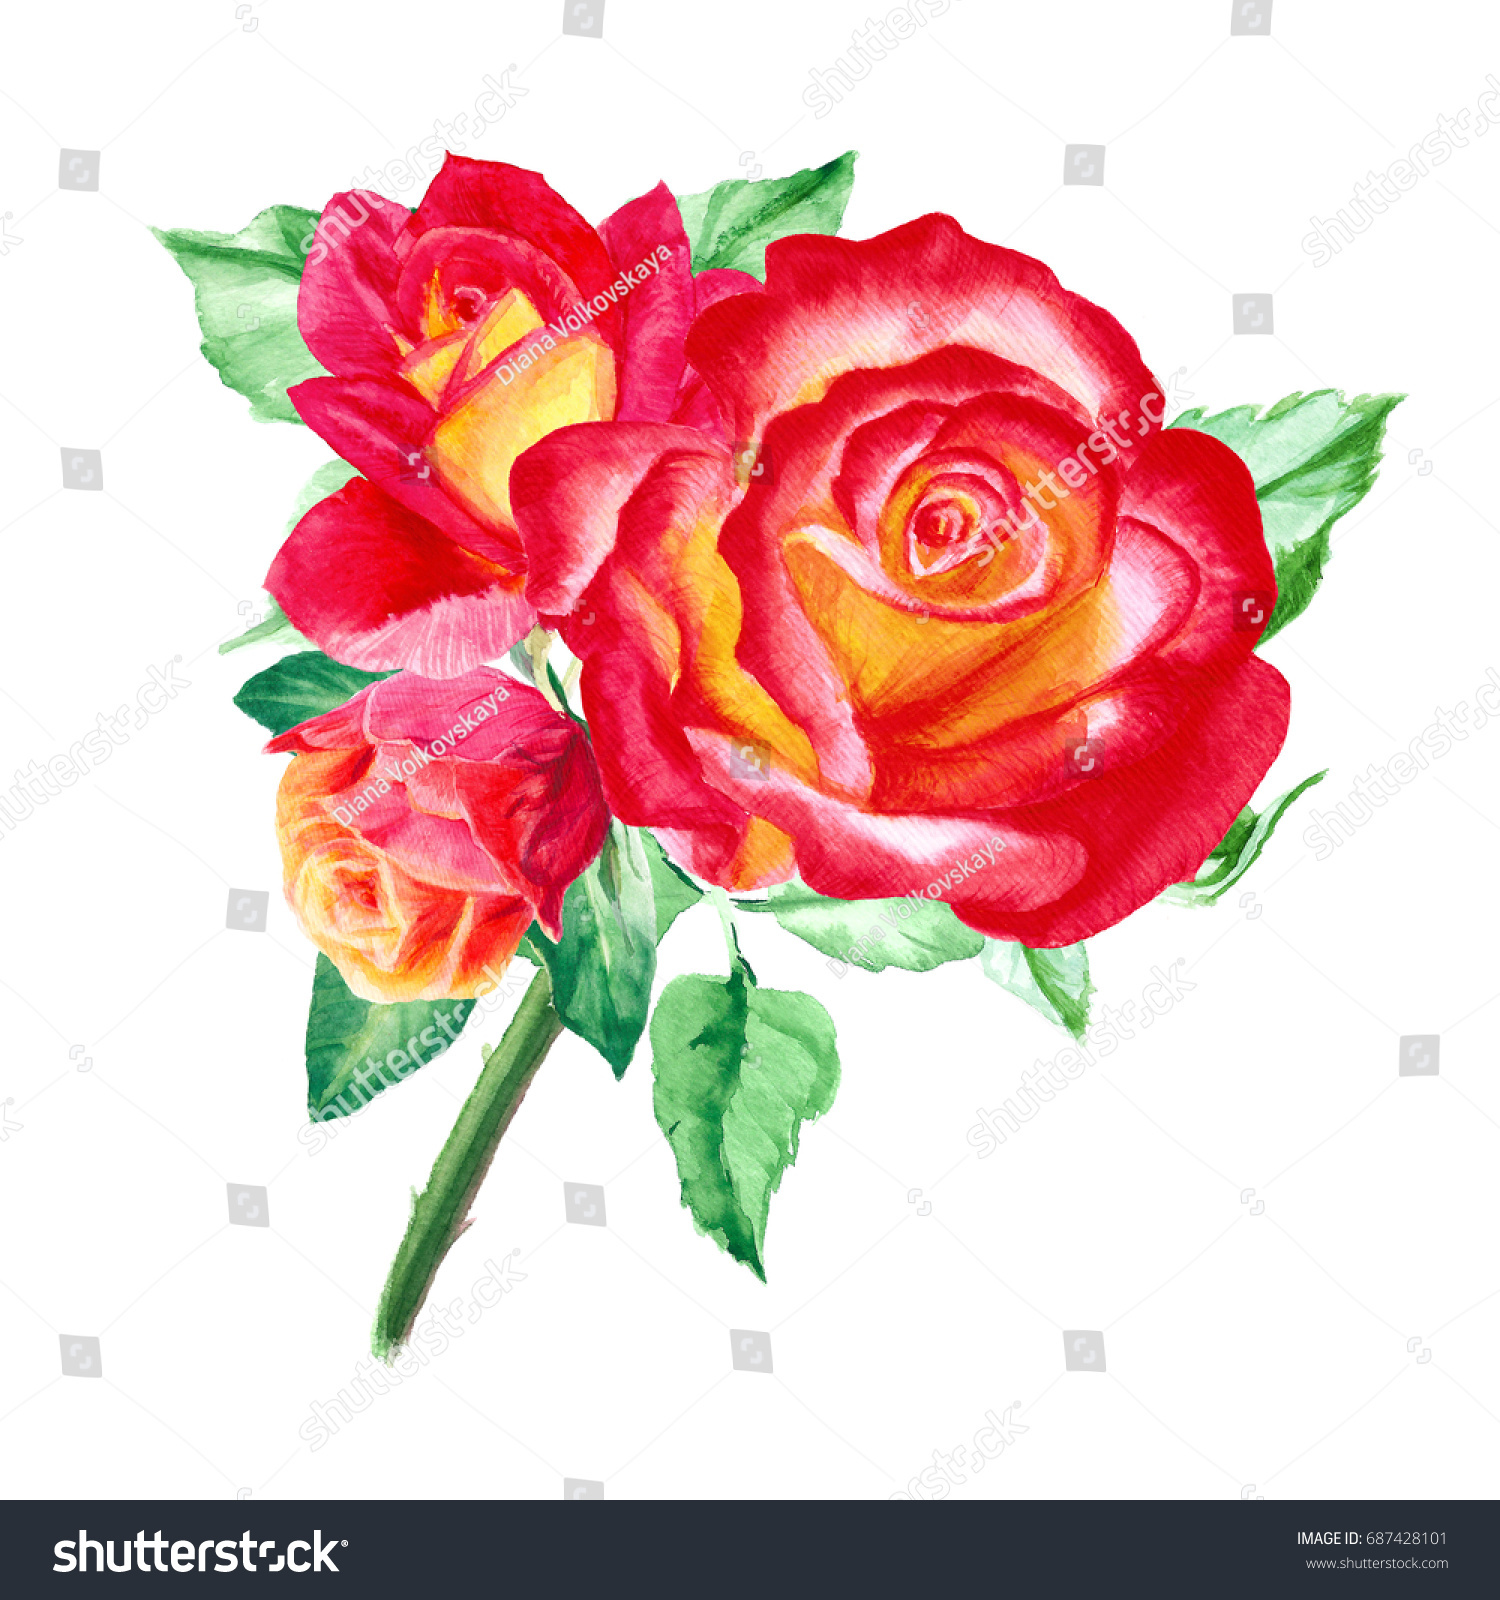 Watercolor Pink Red Yellow Roses Rose Stock Illustration 687428101